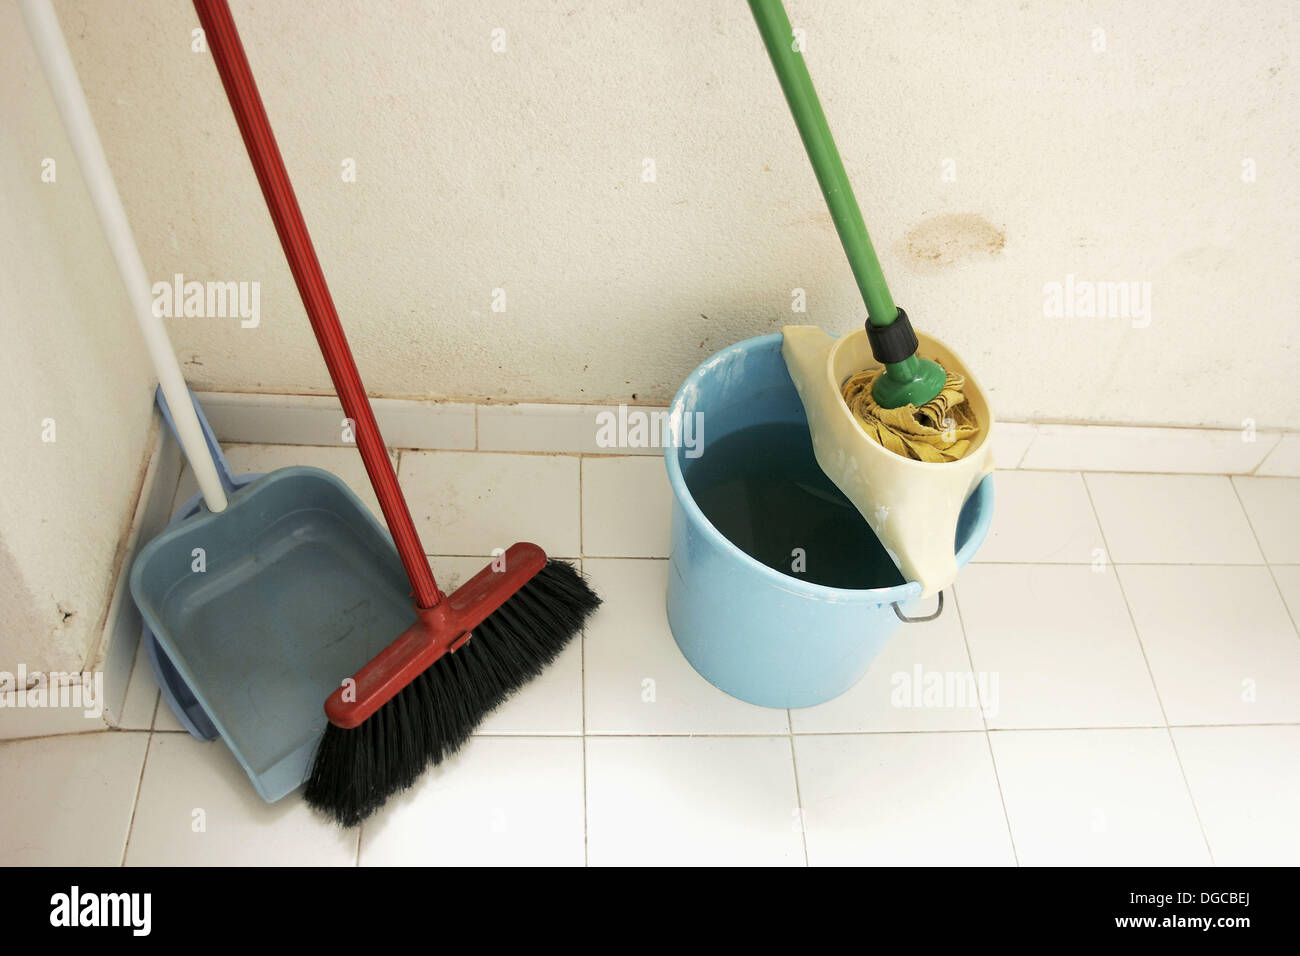 Latest Picture Of Mop And Broom | Decor & Design Ideas in HD